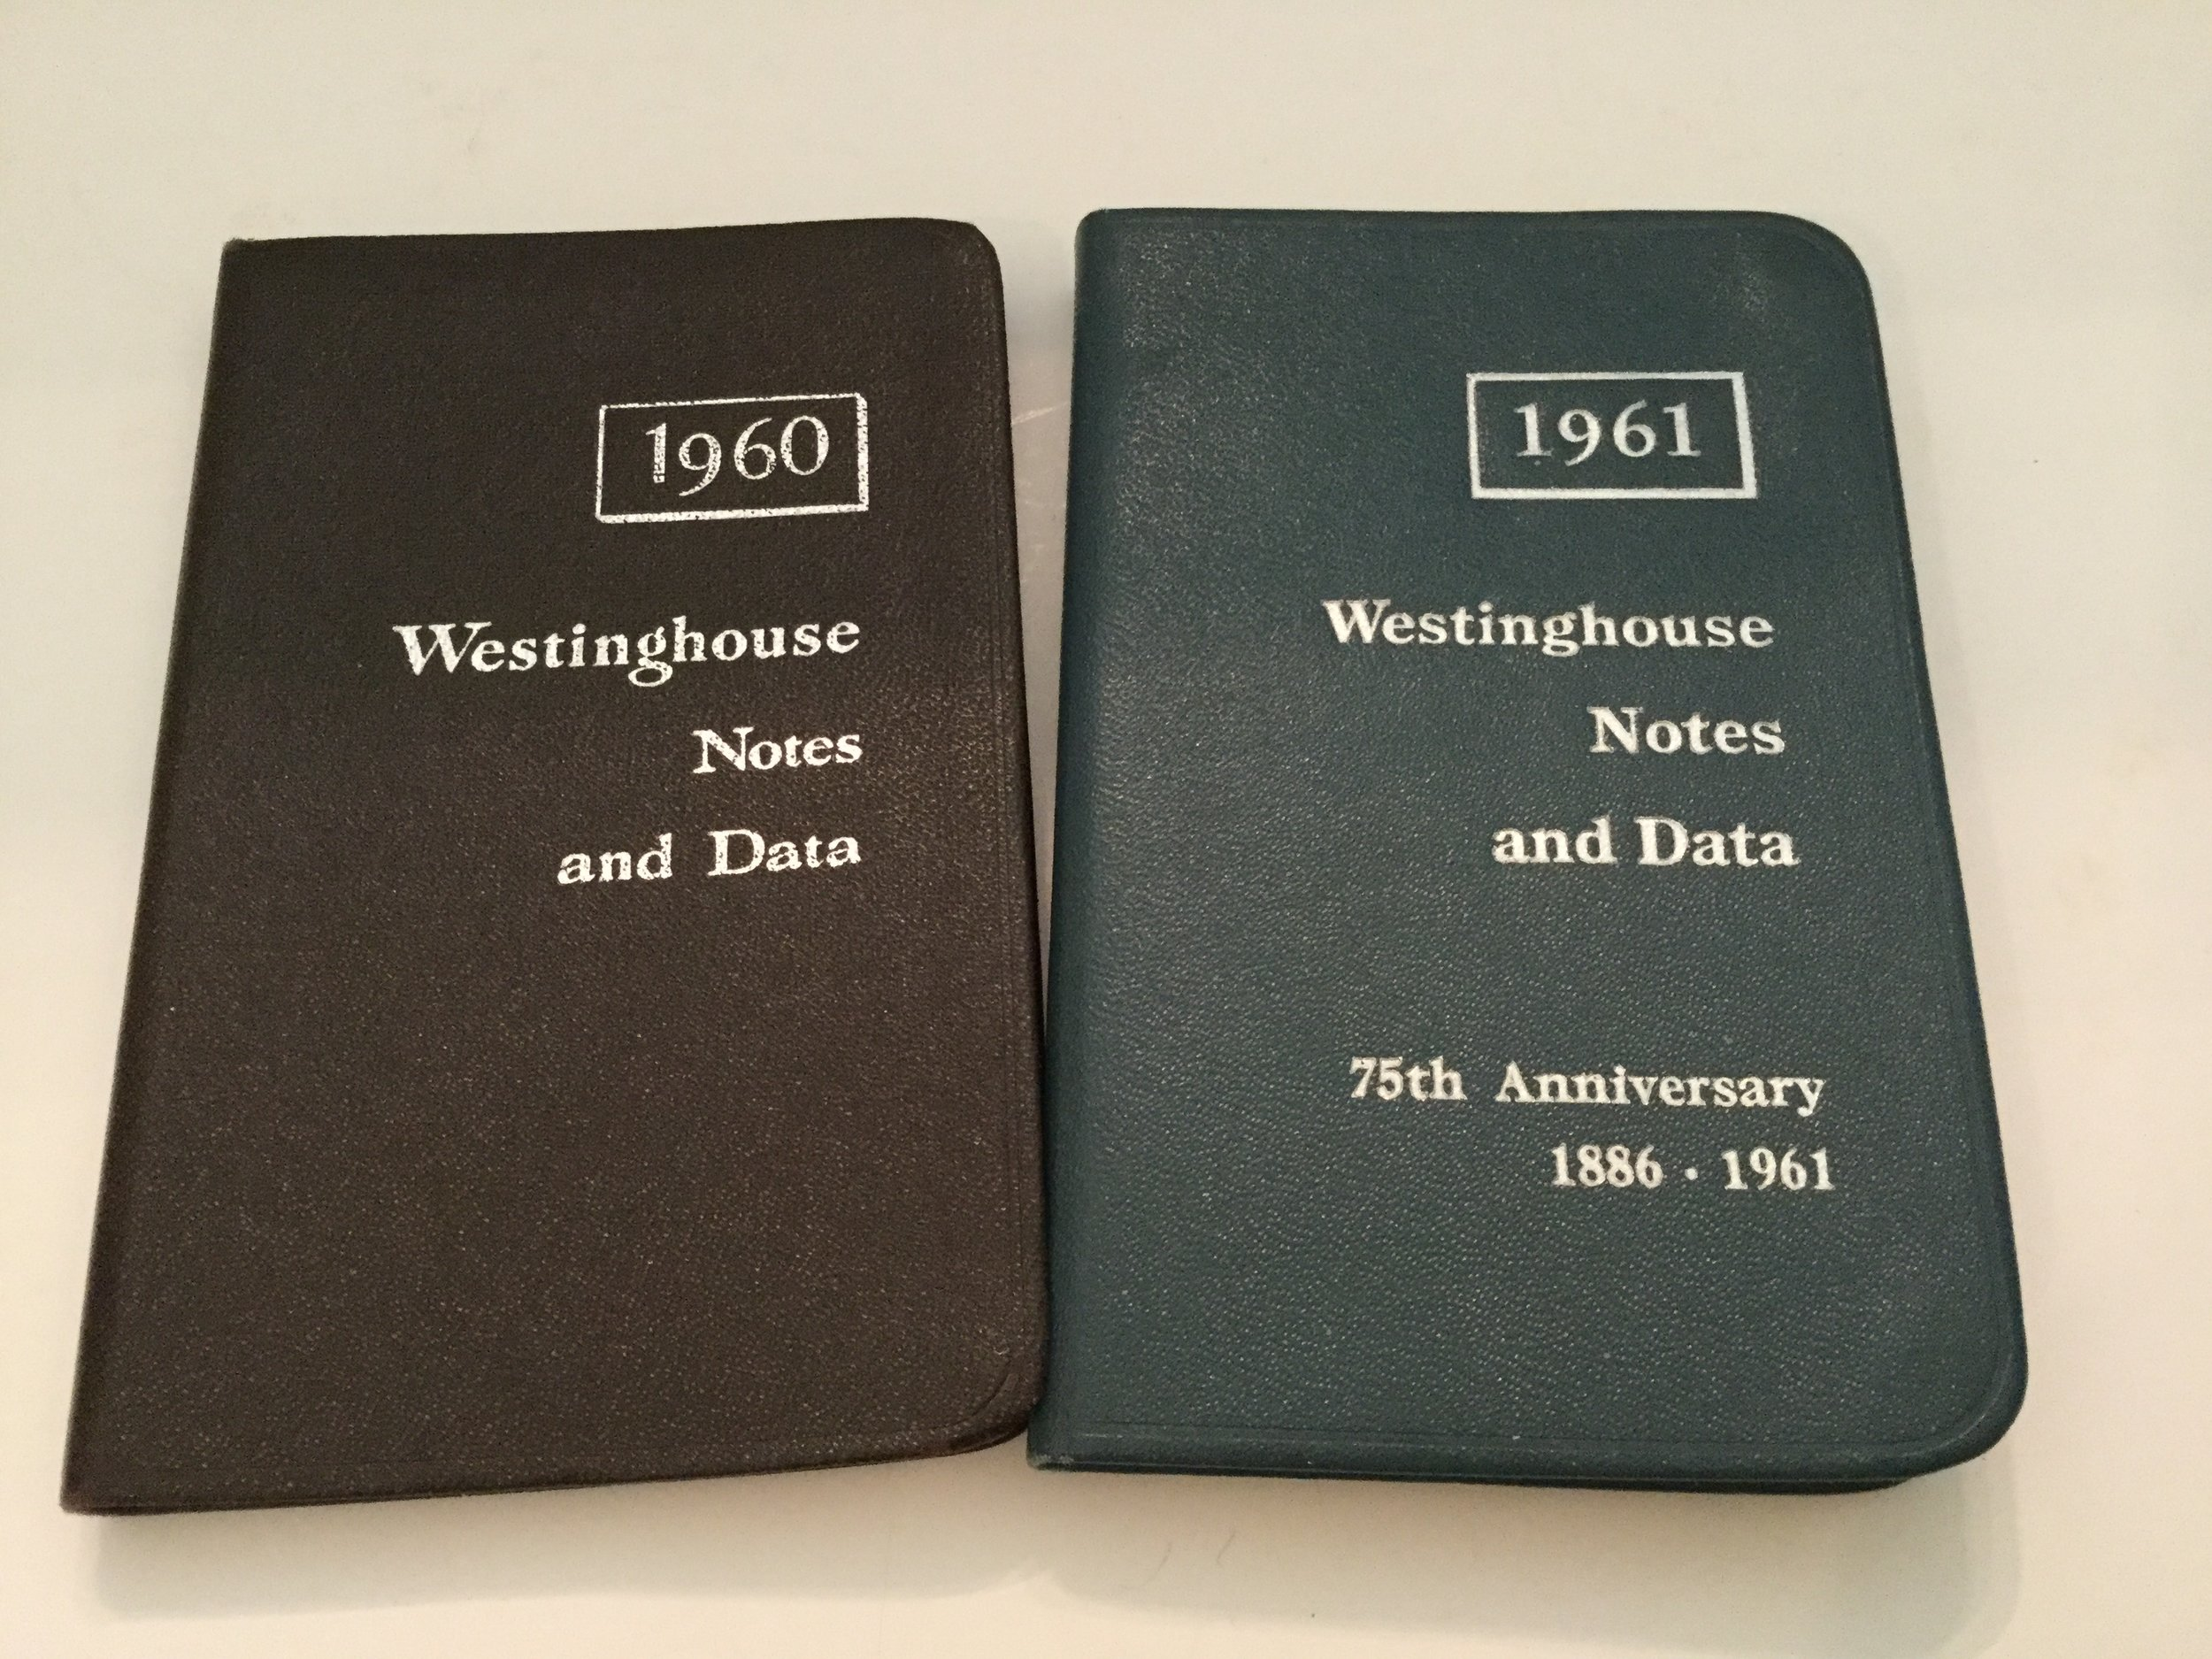 These diaries were full of interesting data, maps and pages for notes and appointments. Every year Dad gave me one or two to share with my high school science and math teachers ... my chemistry teacher especially liked his. I collected these two.